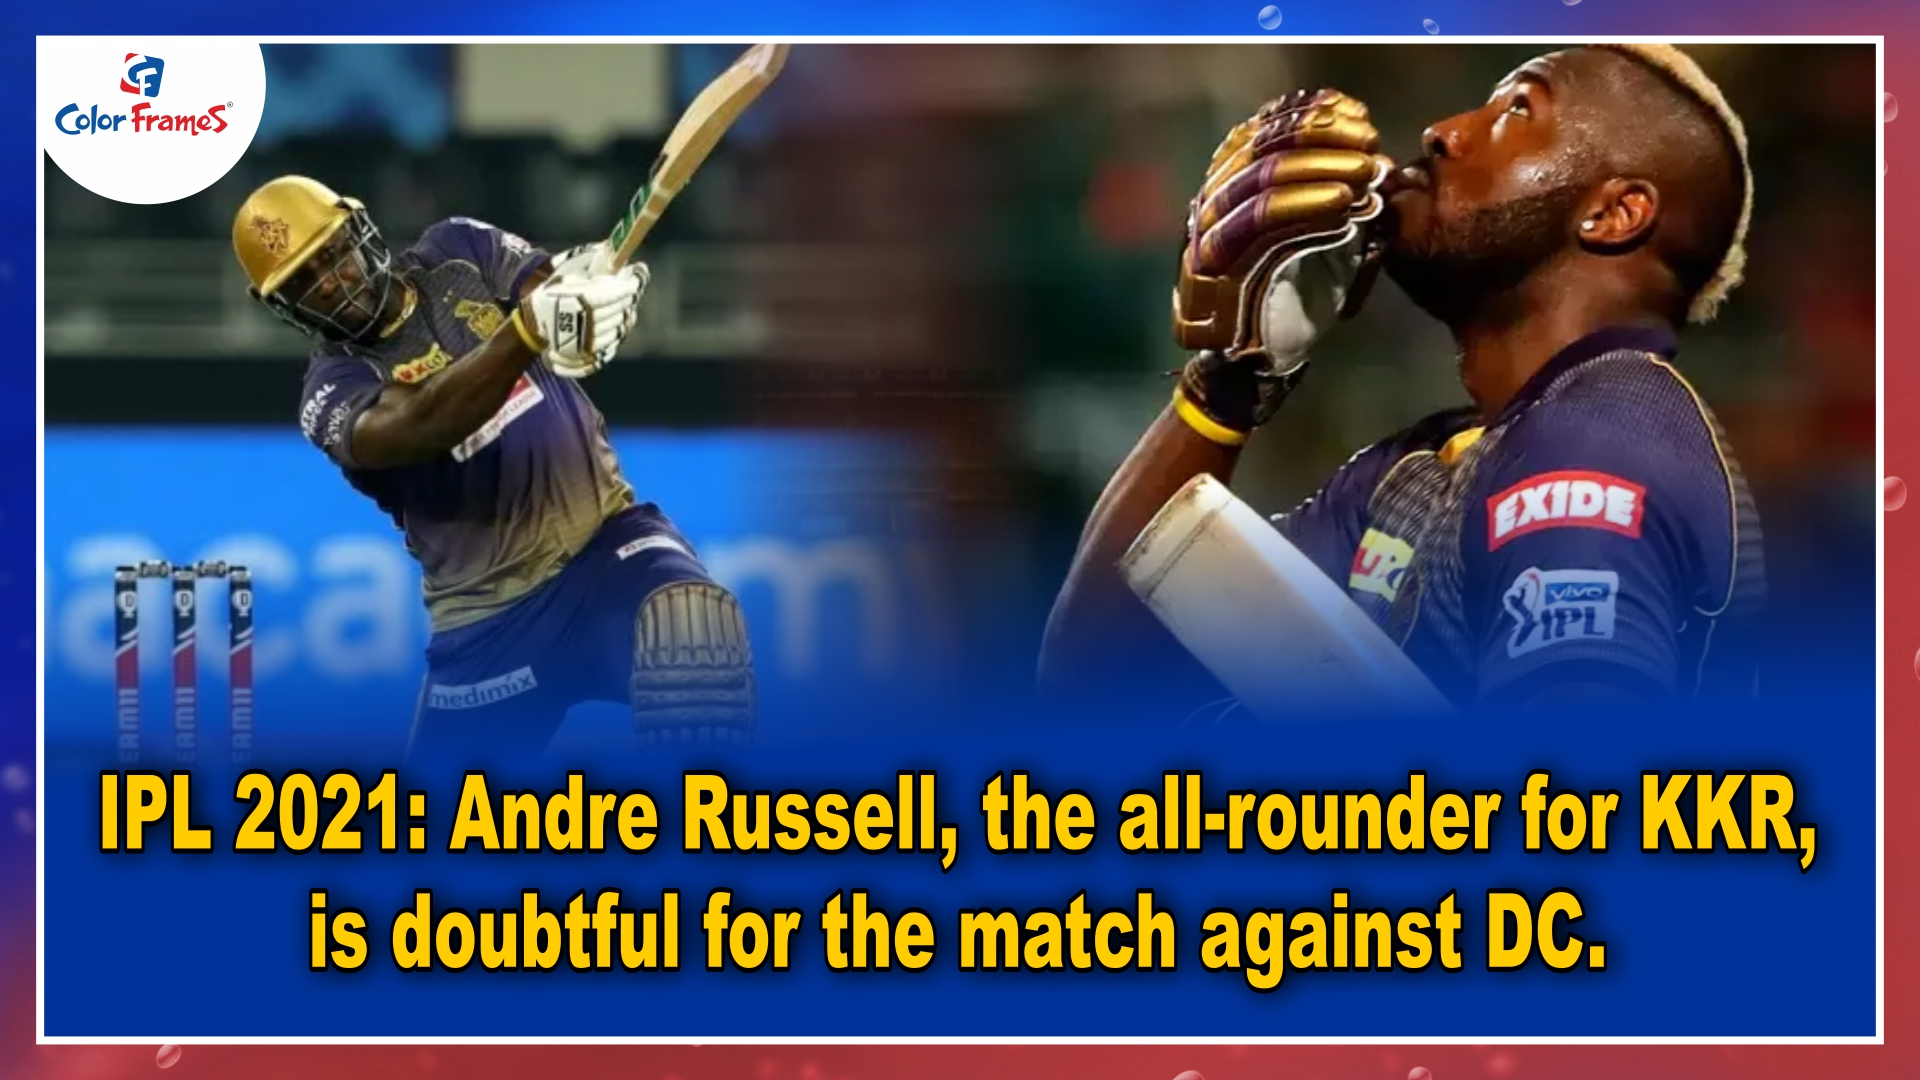 IPL 2021: Andre Russell, the all-rounder for KKR, is doubtful for the match against DC.